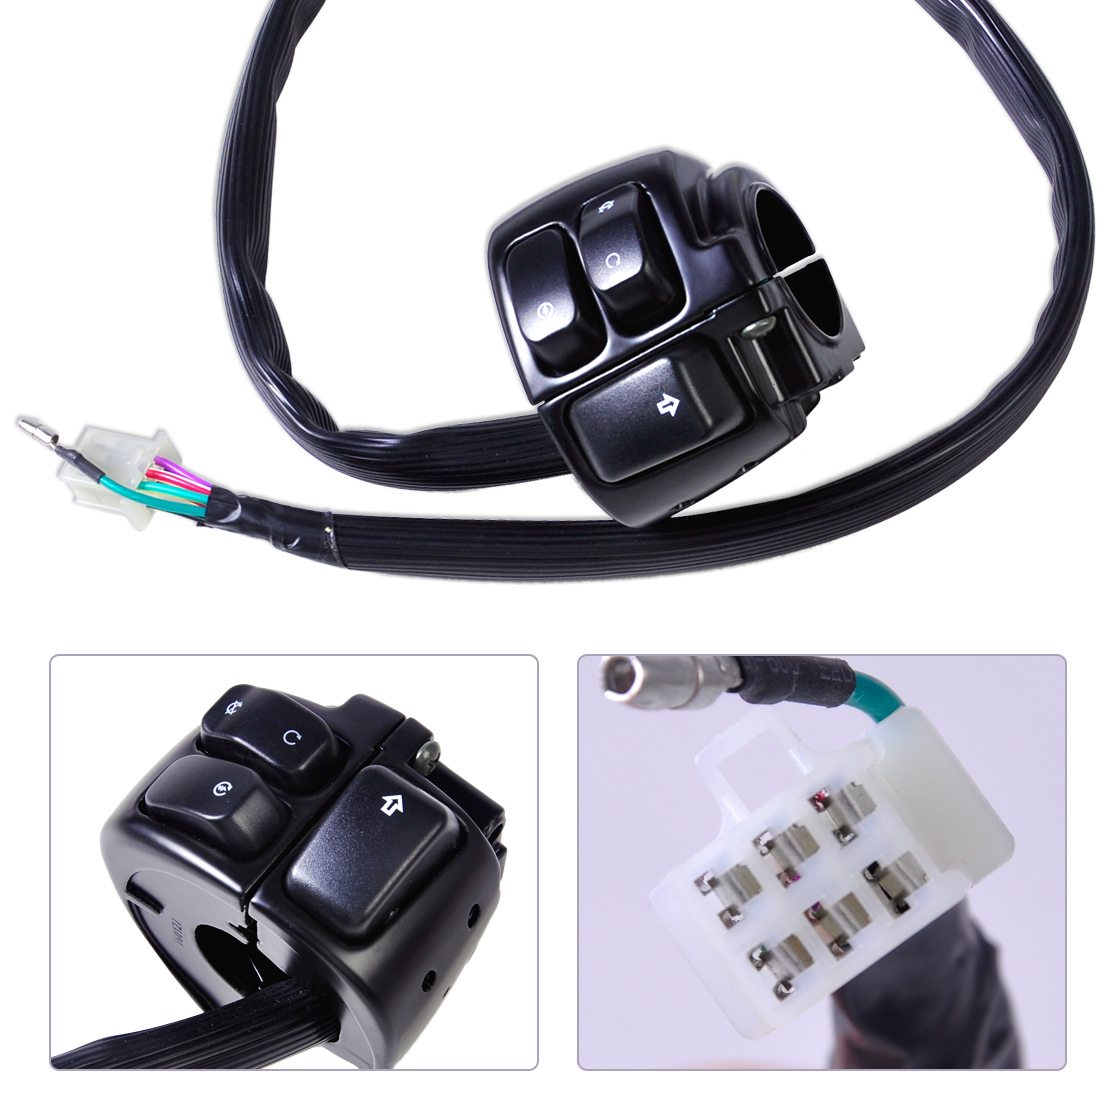 Harley Turn Signal Wiring Harness on harley turn signal mirrors, harley turn signal bulbs, harley turn signal accessories, harley turn signal cover, harley turn signal relocation kit, harley turn signal connectors,